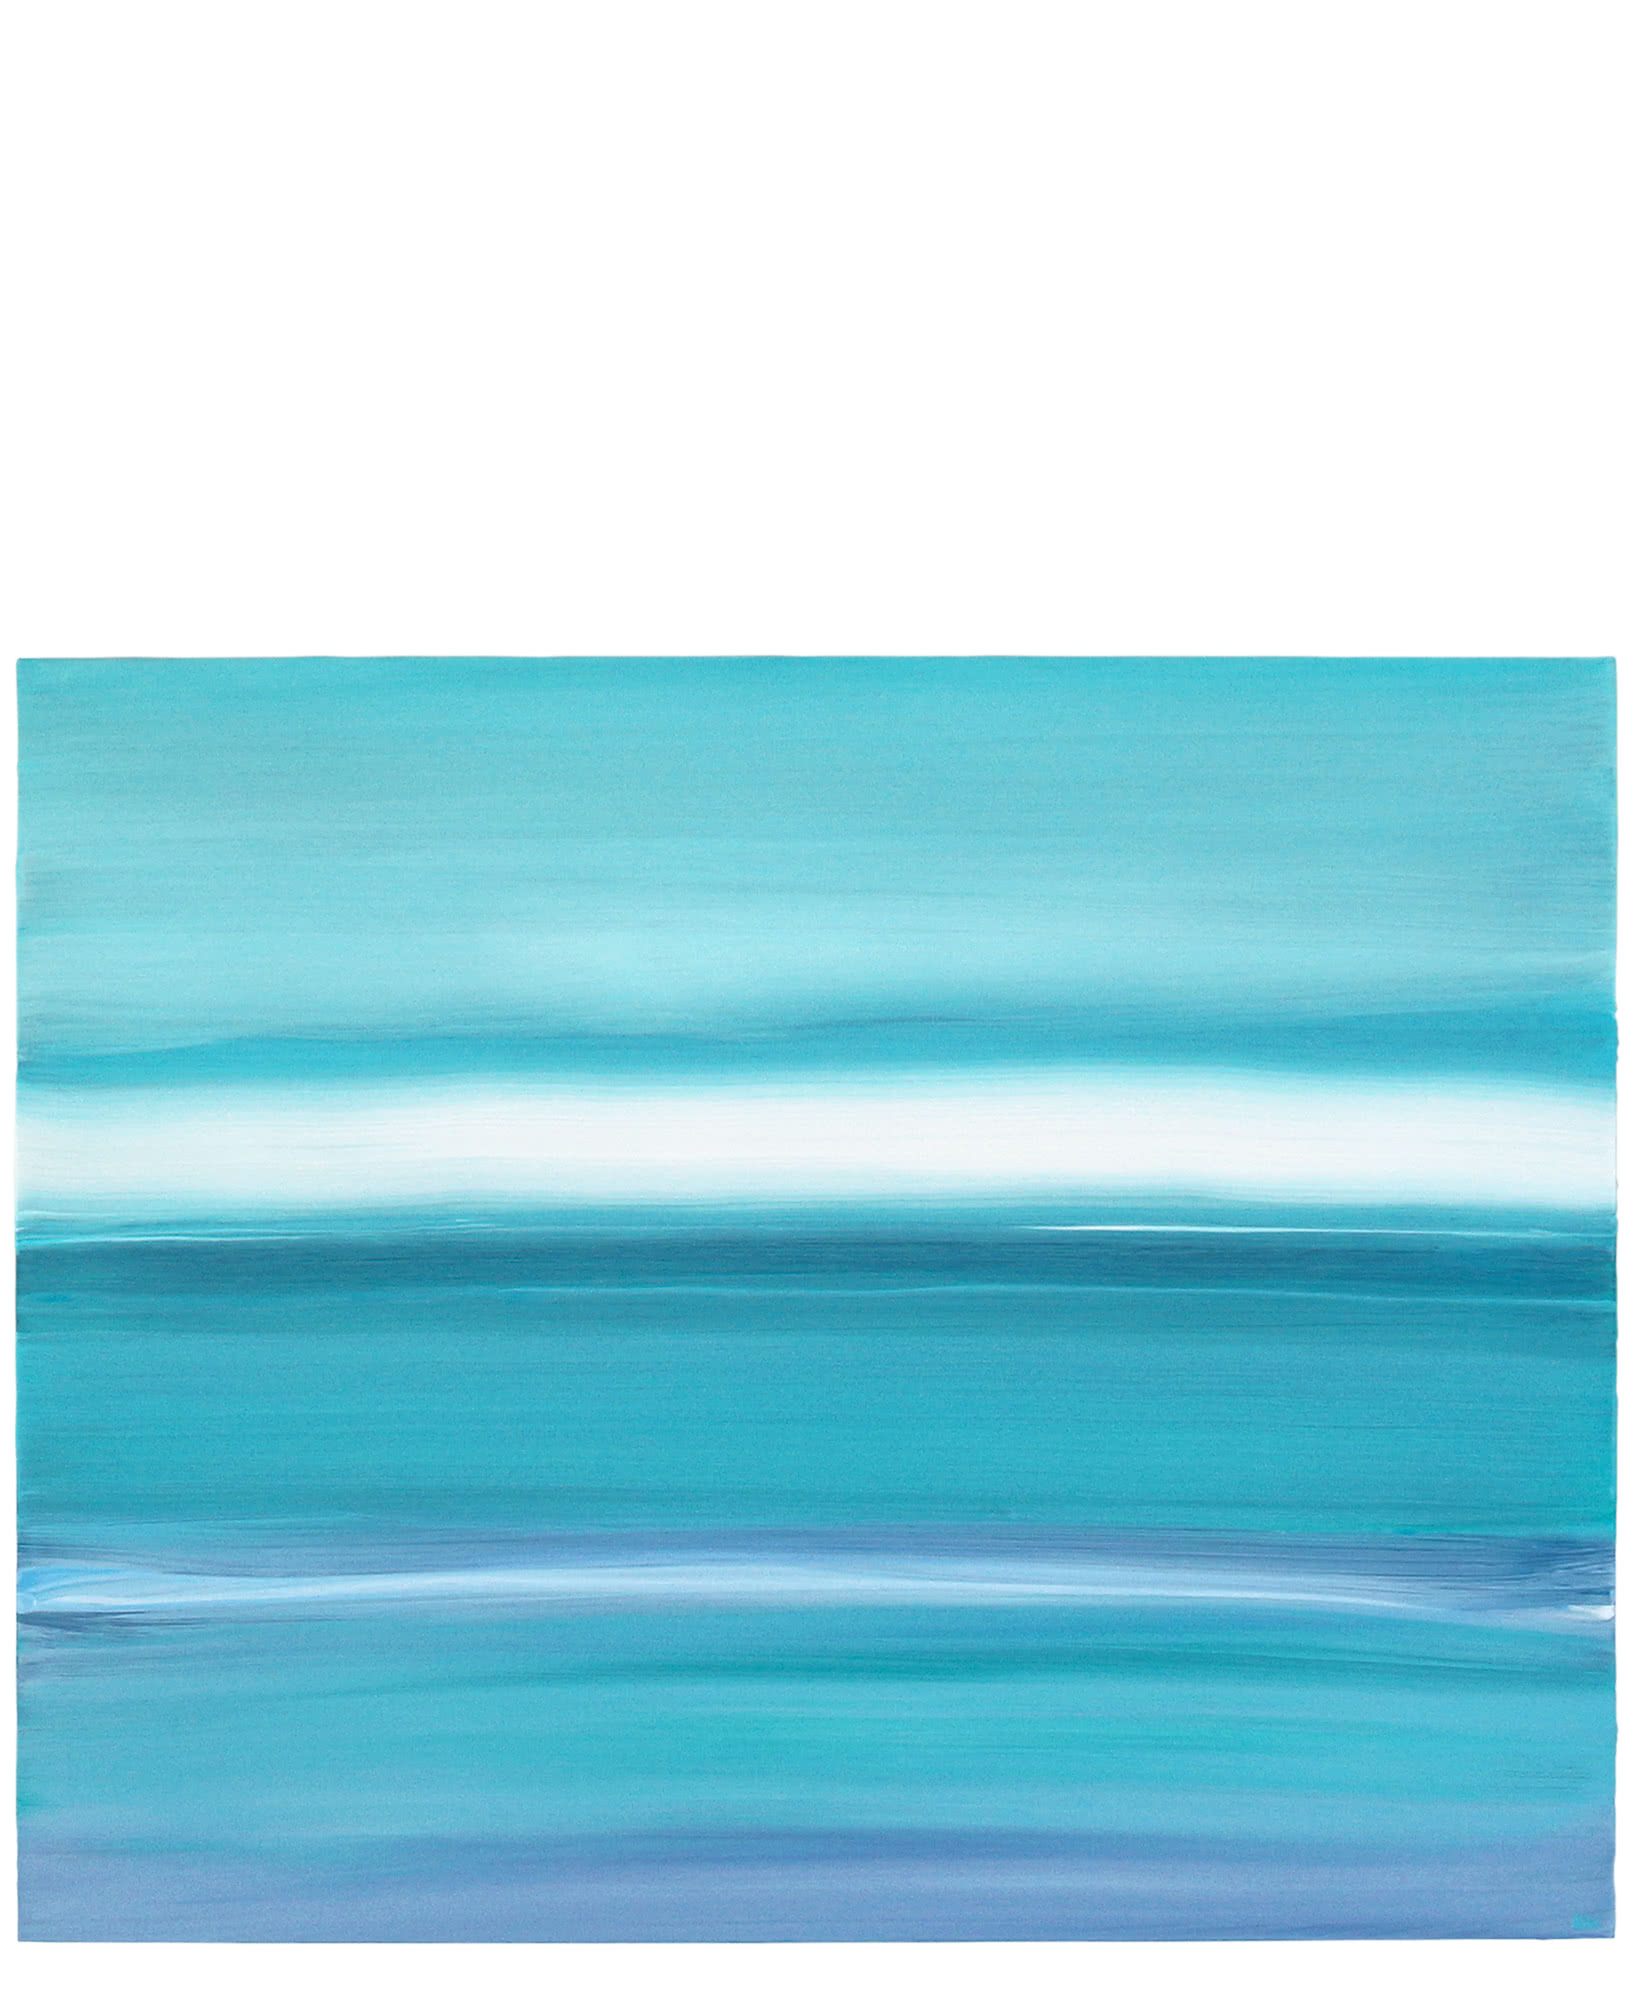 """Ocean Memories 144"" by Laurie Winthers,"